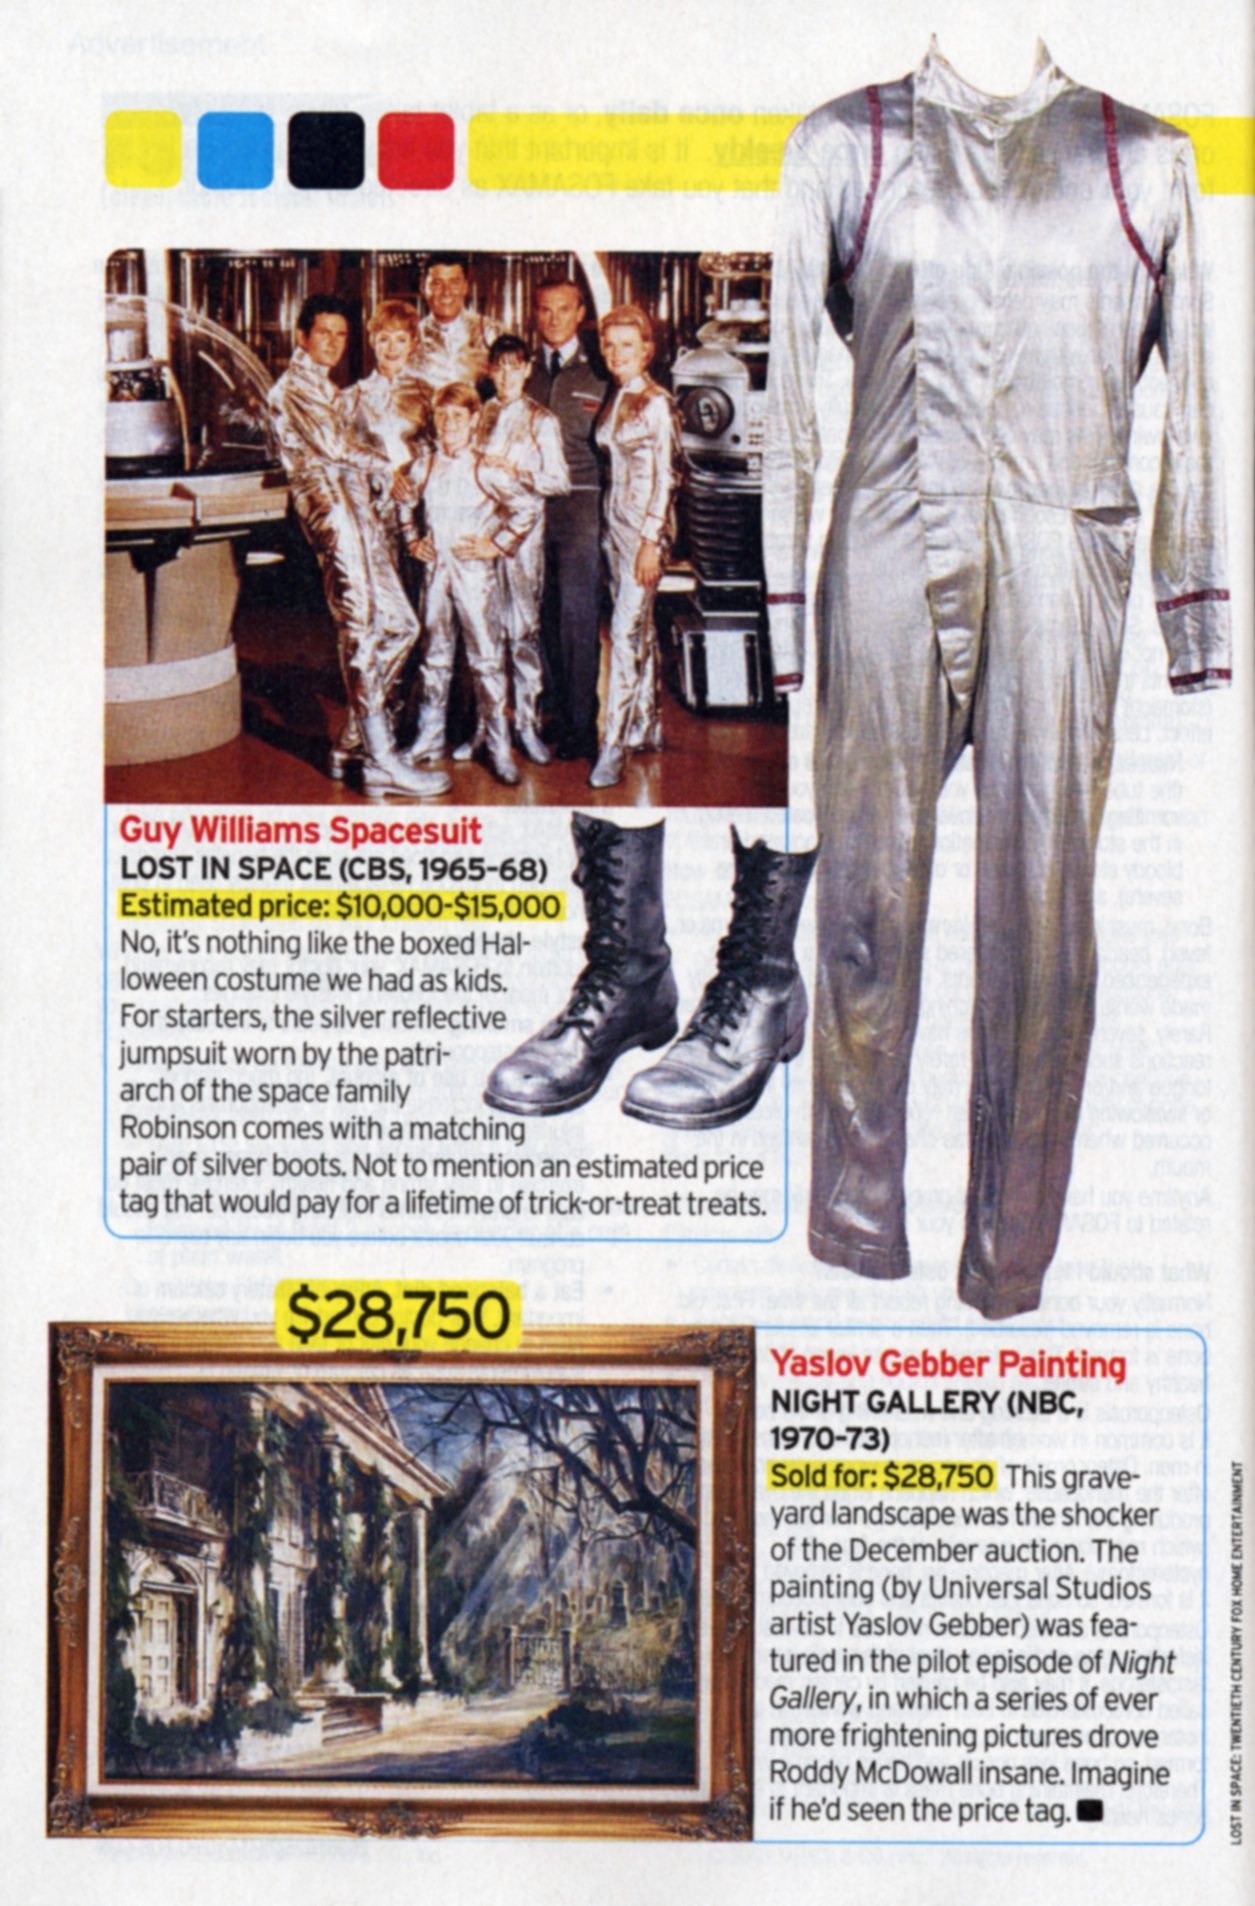 TV Guide Article about Guy Williams Spacesuit